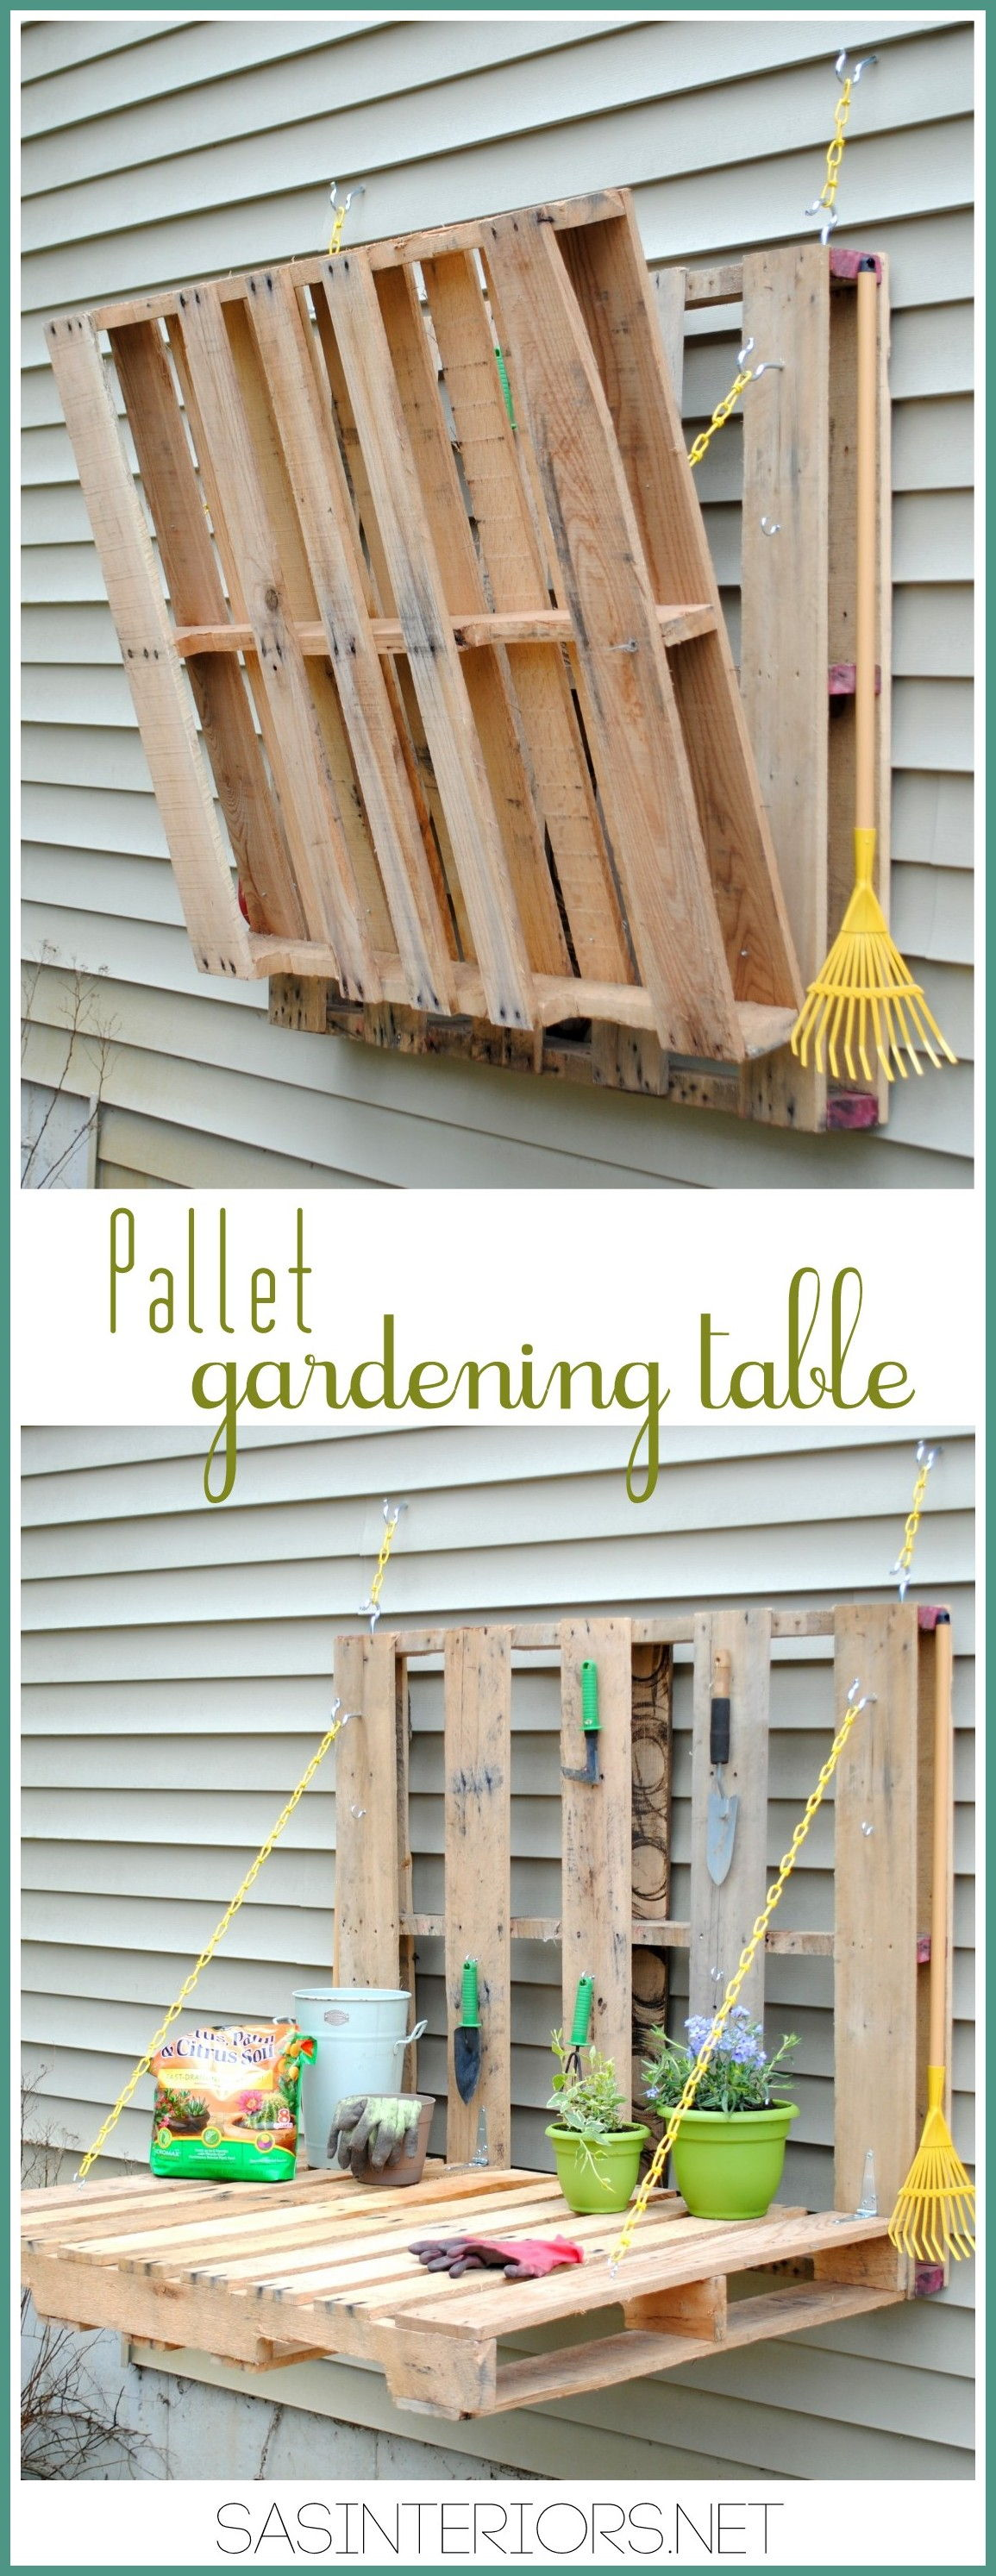 30+ Creative Pallet Furniture DIY Ideas and Projects --> DIY Pallet Gardening Table